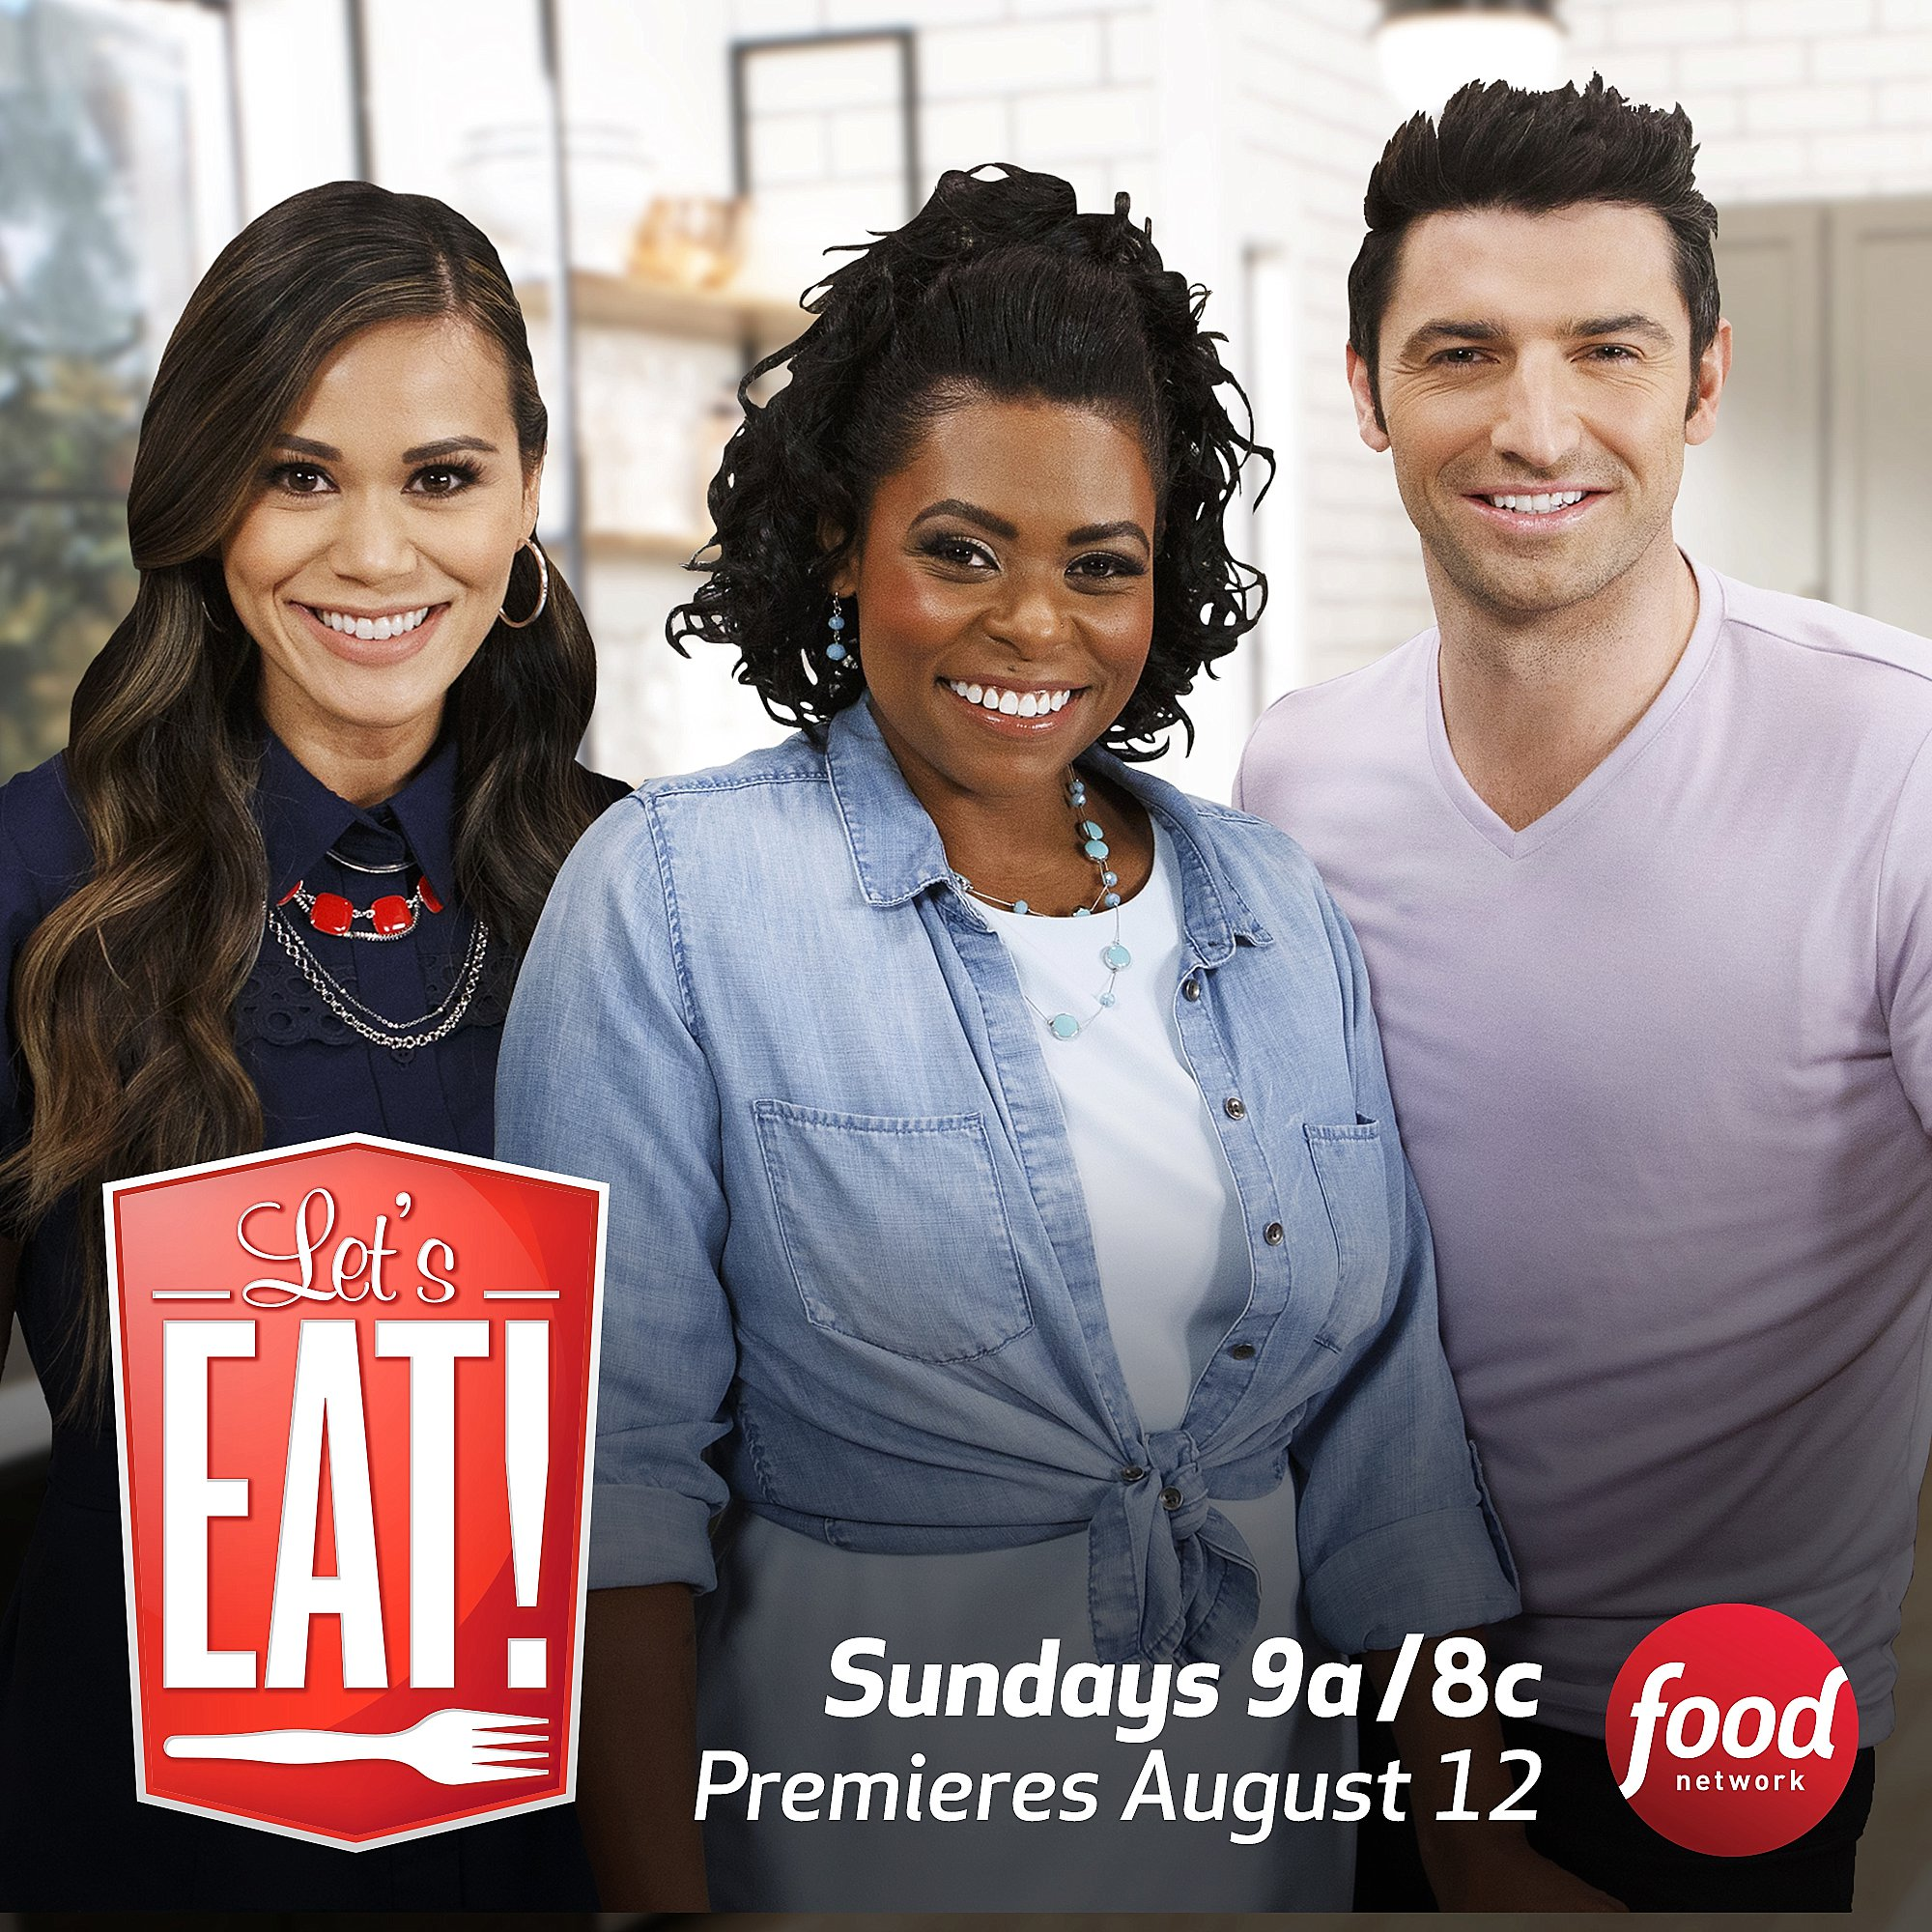 Interview with Let's eat with co-host Brandi Milloy on the food network